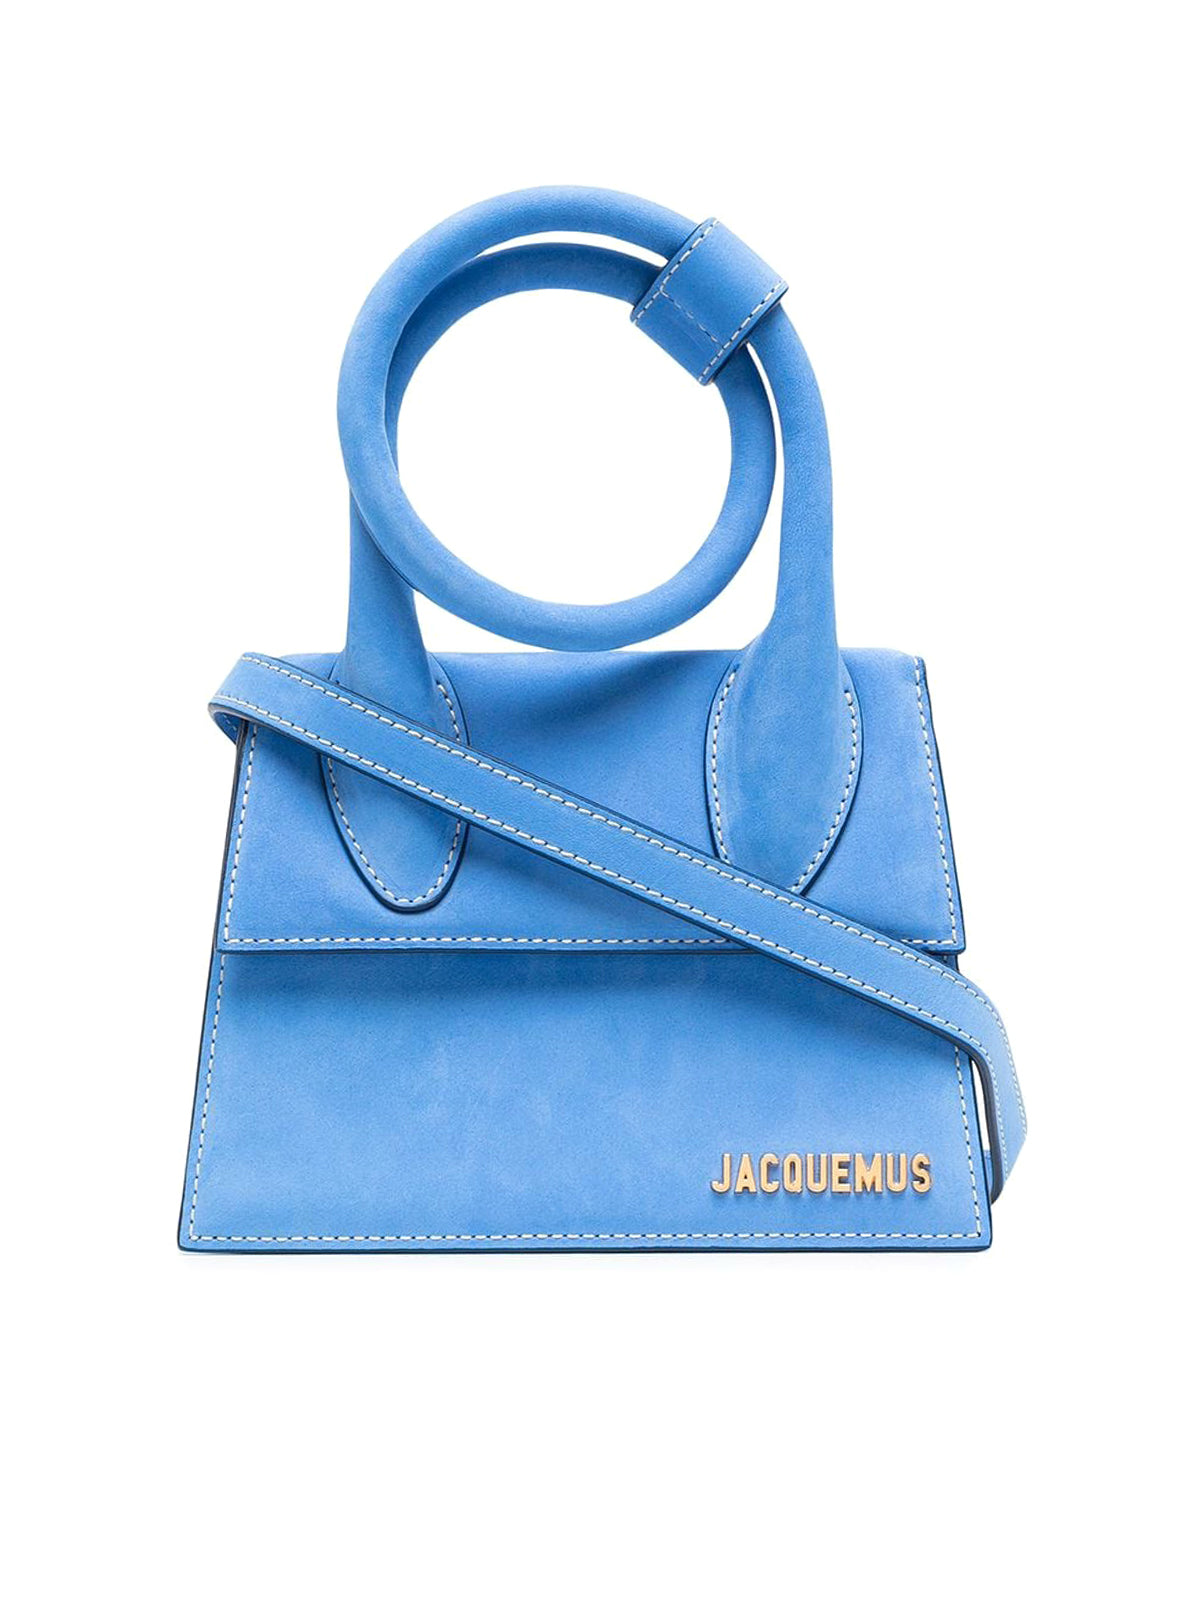 Le Chiquito Noeud top-handle bag